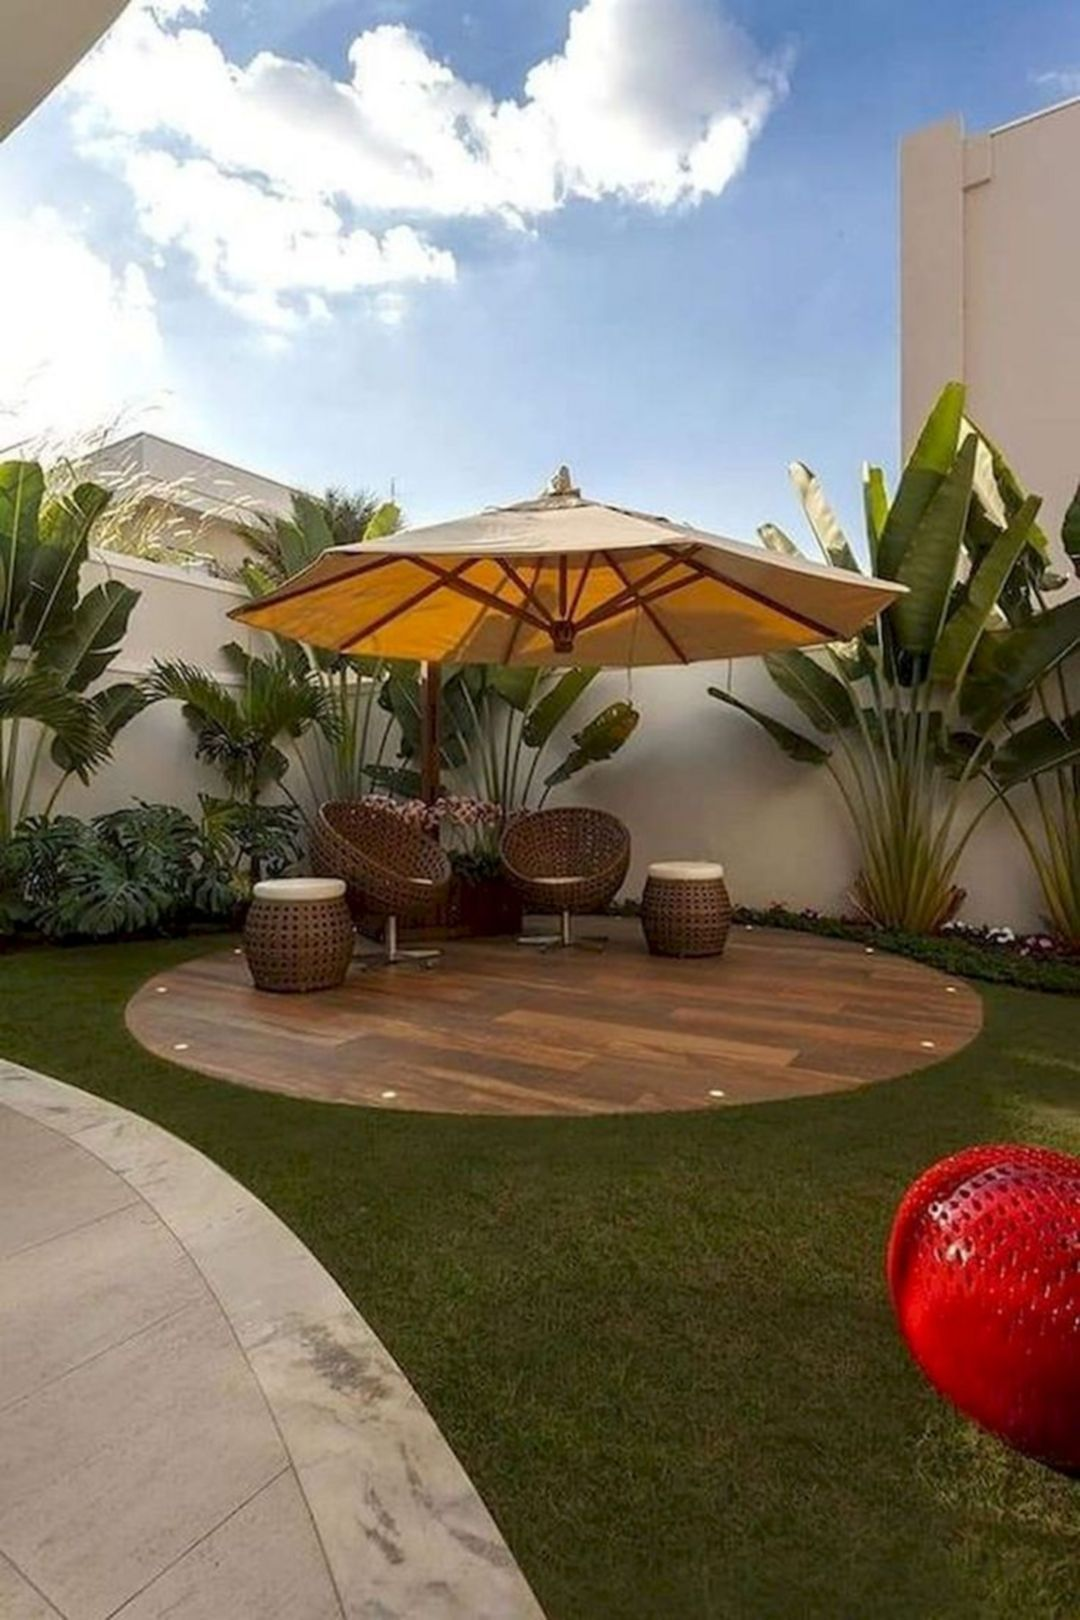 11 ideal small garden designs for inspiring your home yard on inspiring trends front yard landscaping ideas minimal budget id=22748